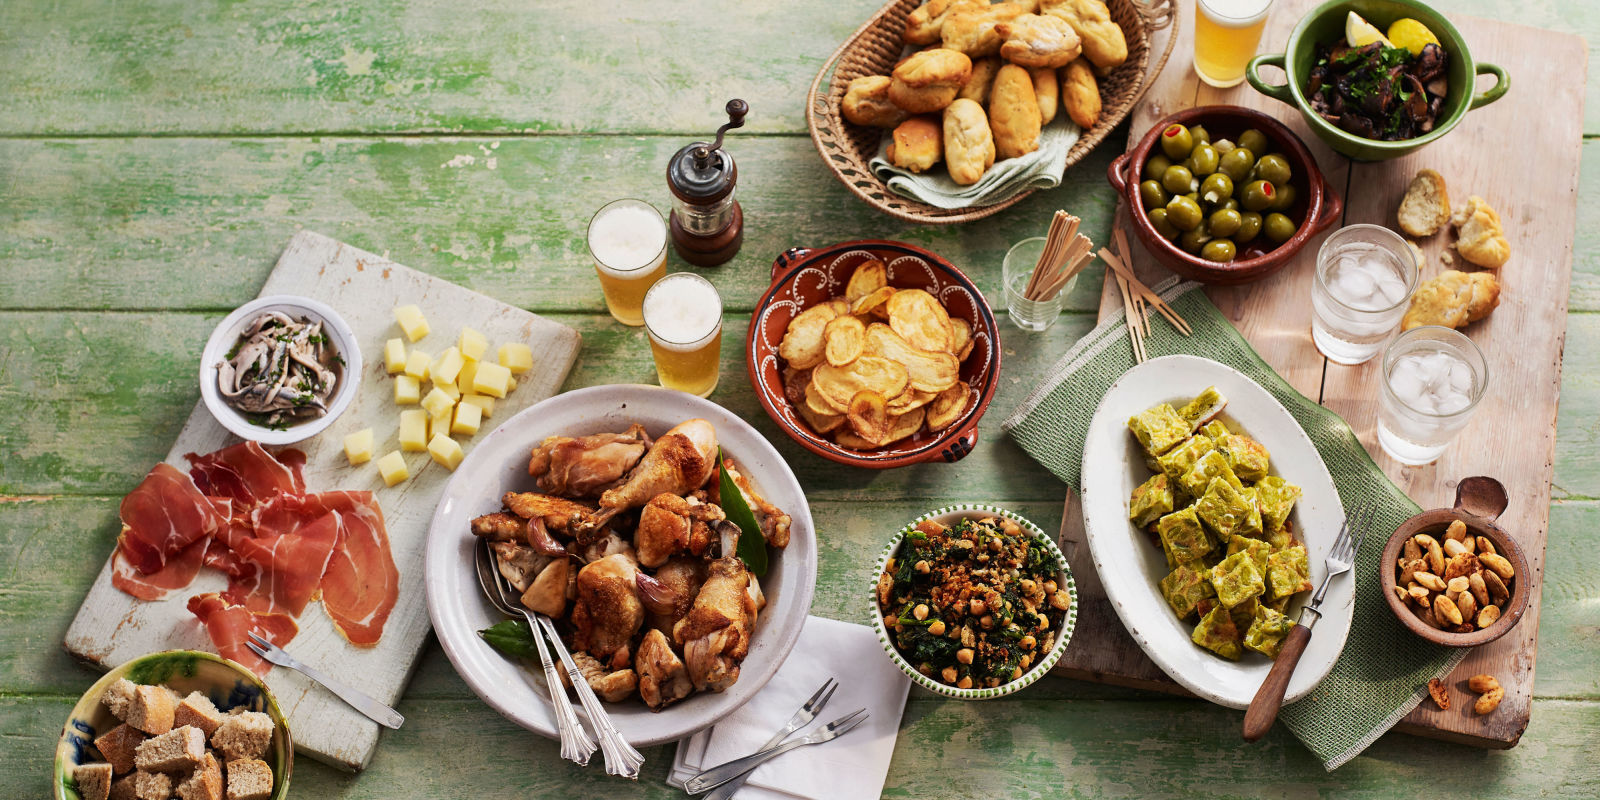 8 tips to avoid overindulging at a holiday potluck for Andalusian cuisine